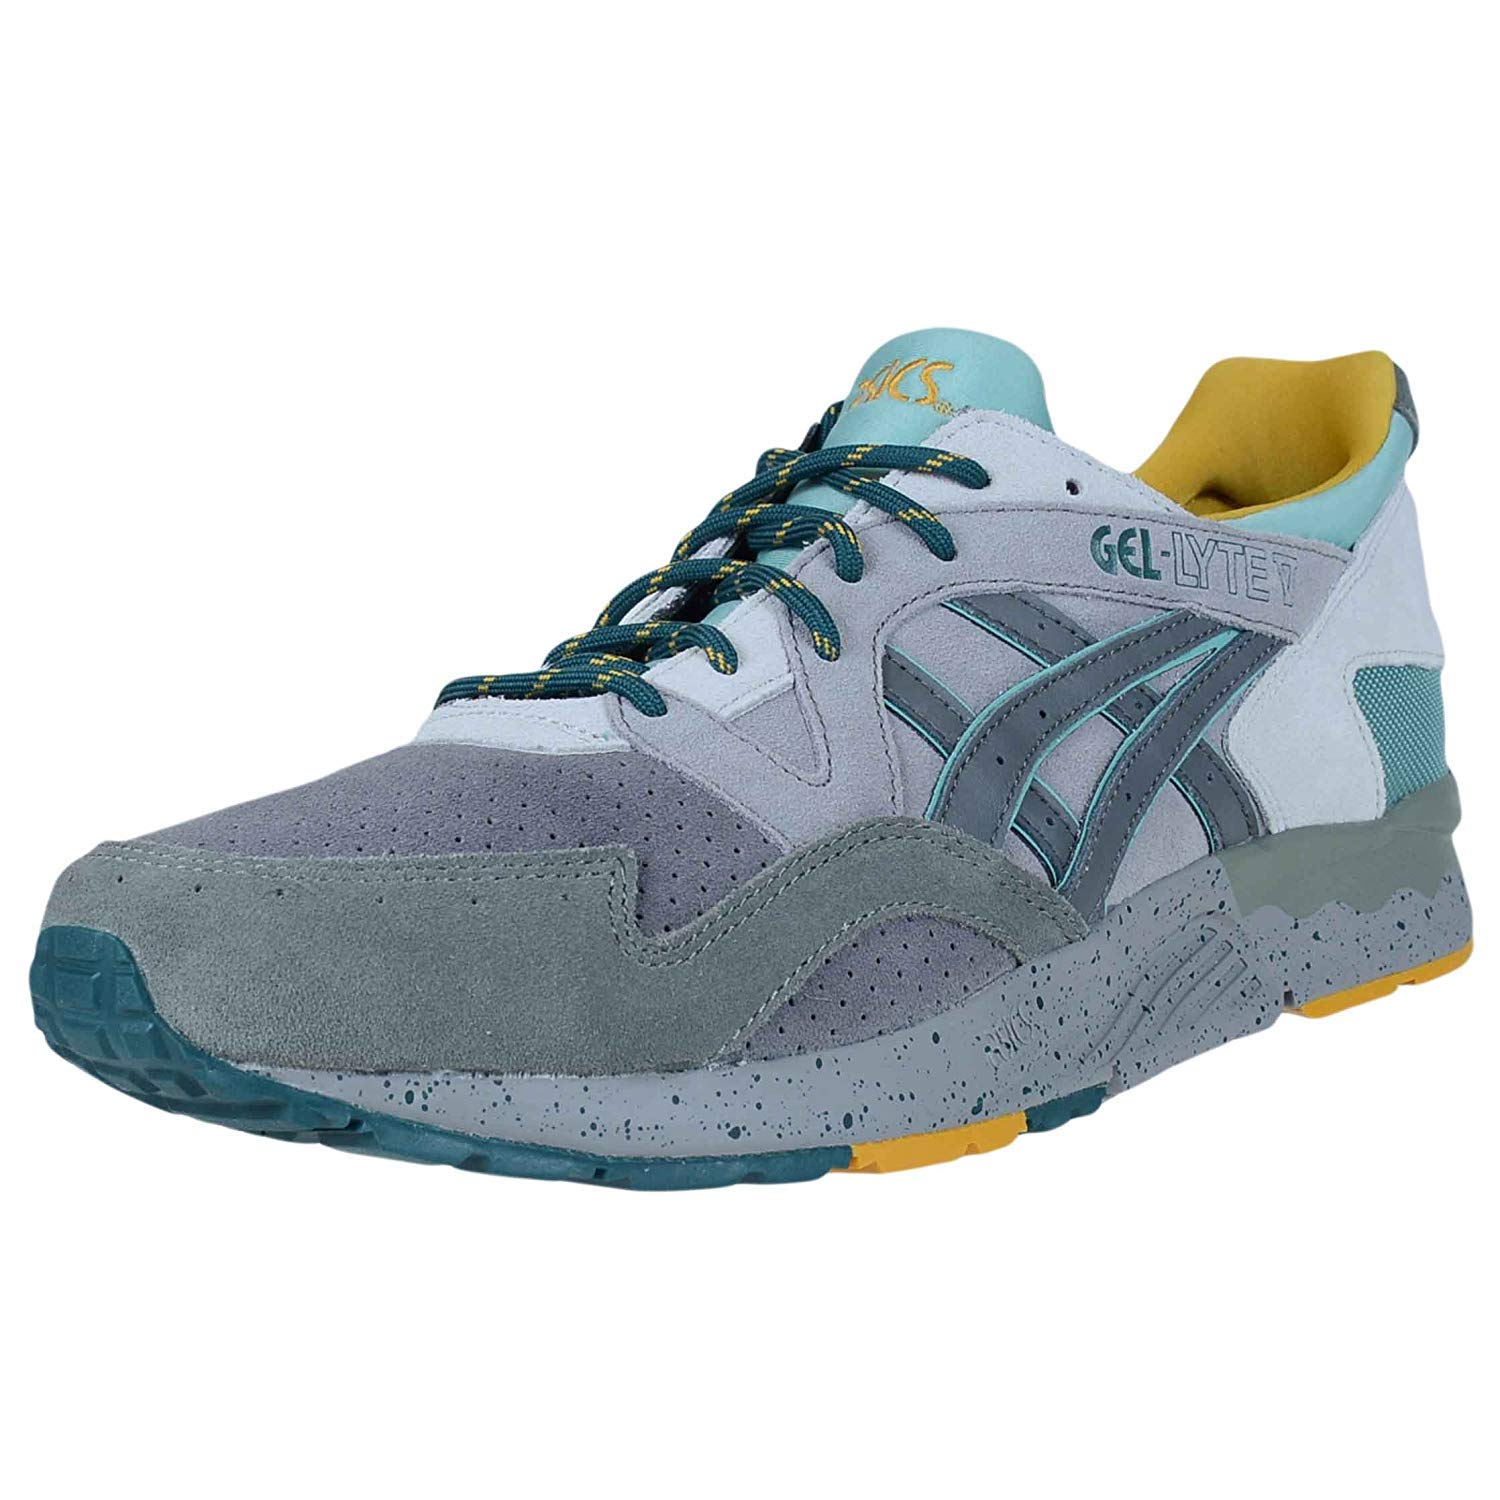 buy online 647d2 03f60 ASICS Mens Tiger Gel-Lyte V Shoes, Size: 7.5 D(M) US, Color Aluminum/Carbon